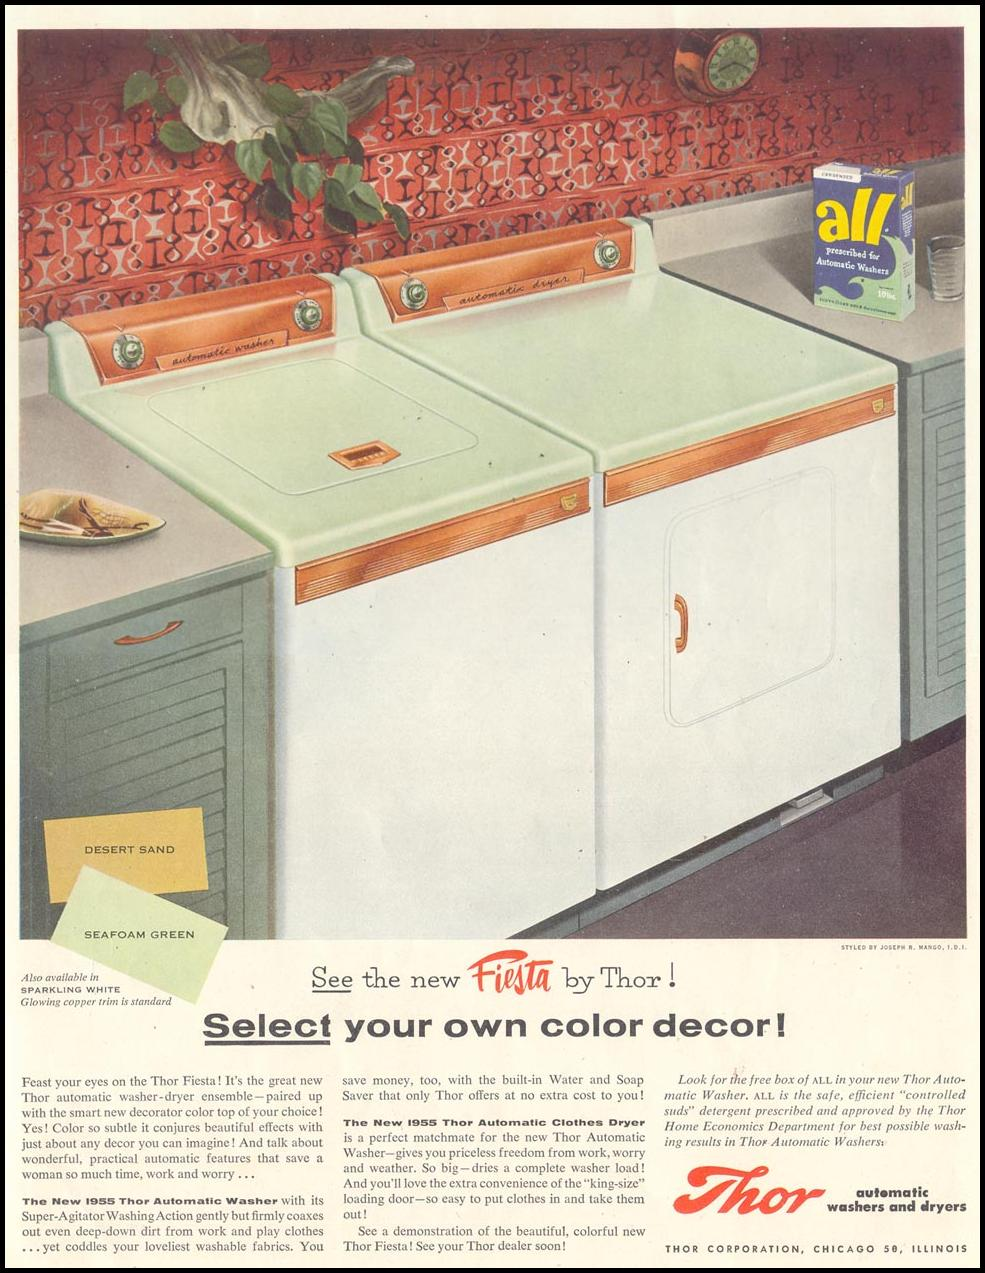 FIESTA WASHER AND DRYER SATURDAY EVENING POST 01/08/1955 INSIDE BACK